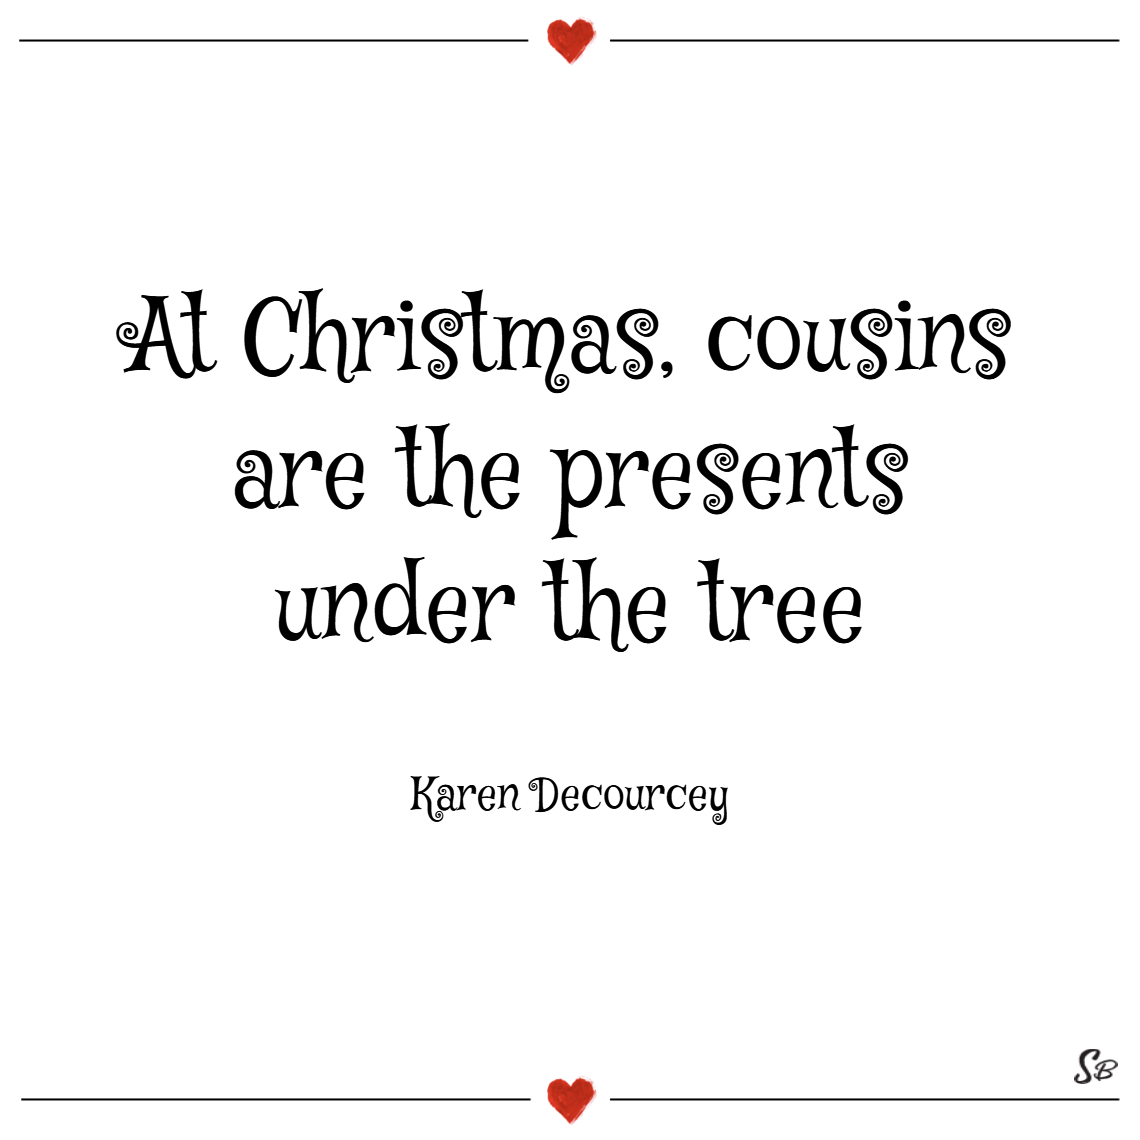 At christmas, cousins are the presents under the tree. – karen decourcey